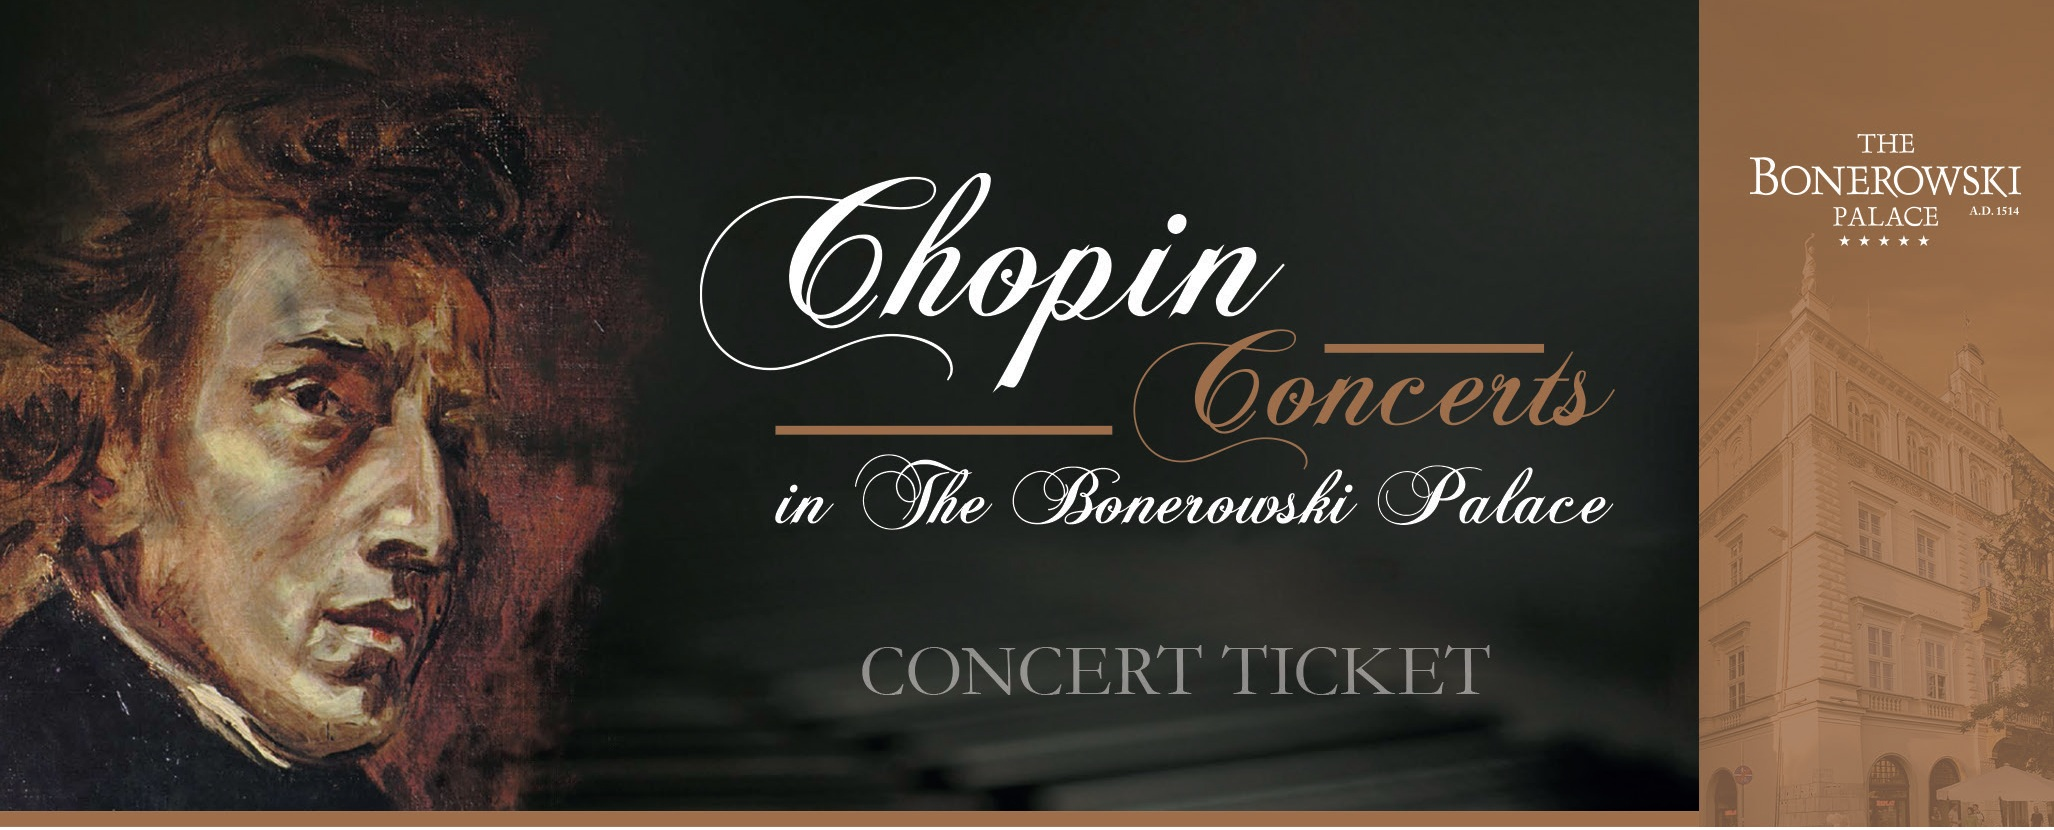 Breakfast&Chopin concert ticket included